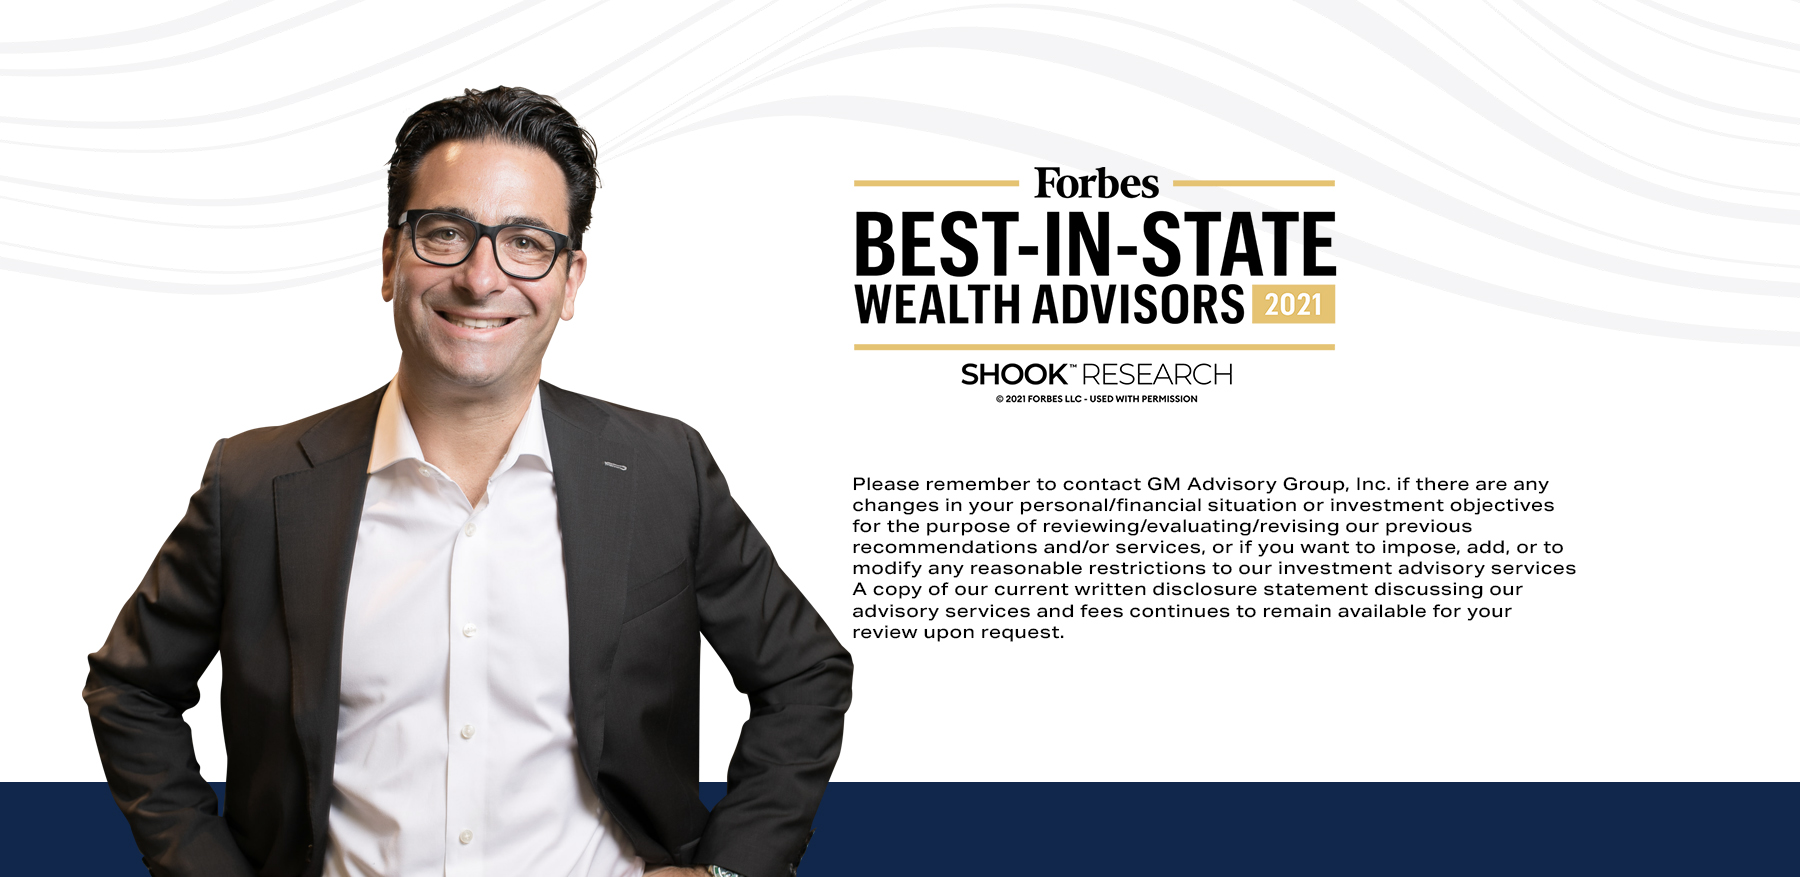 GMAG Ranked on 2021 Forbes Best-in-State Wealth Advisors List